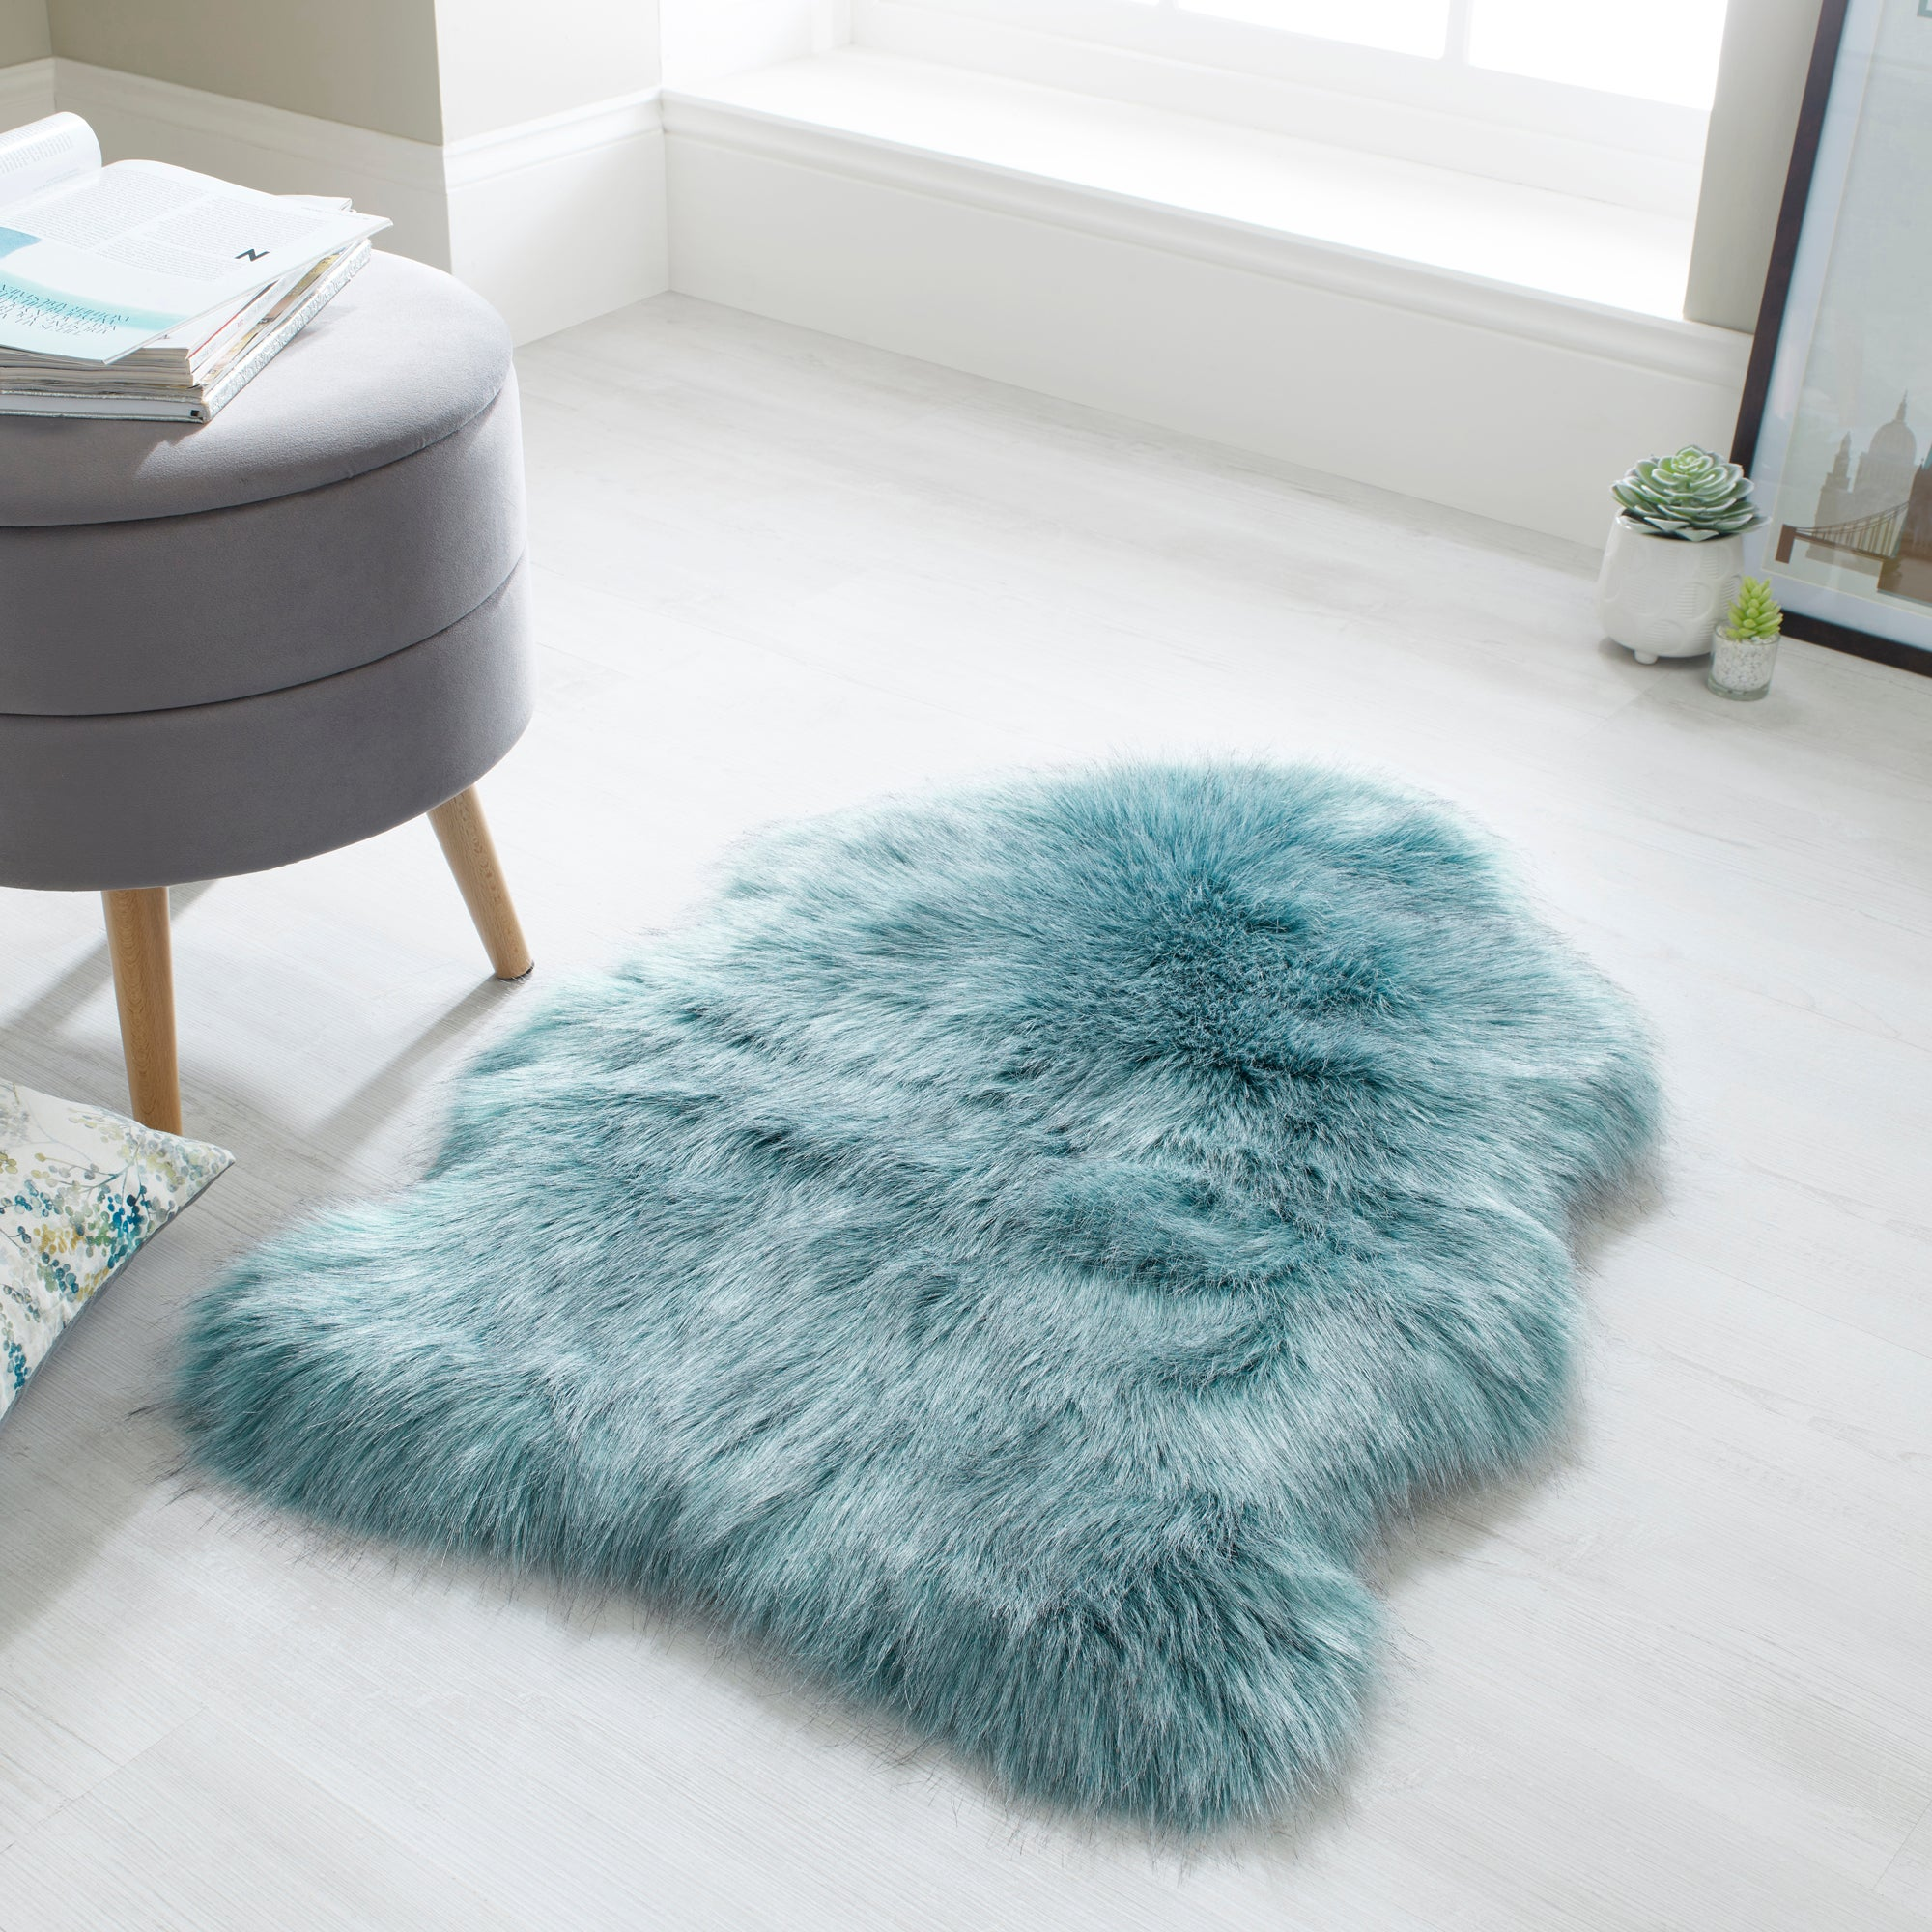 Dunelm Luxury Single Pelt Faux Fur Rug Blue